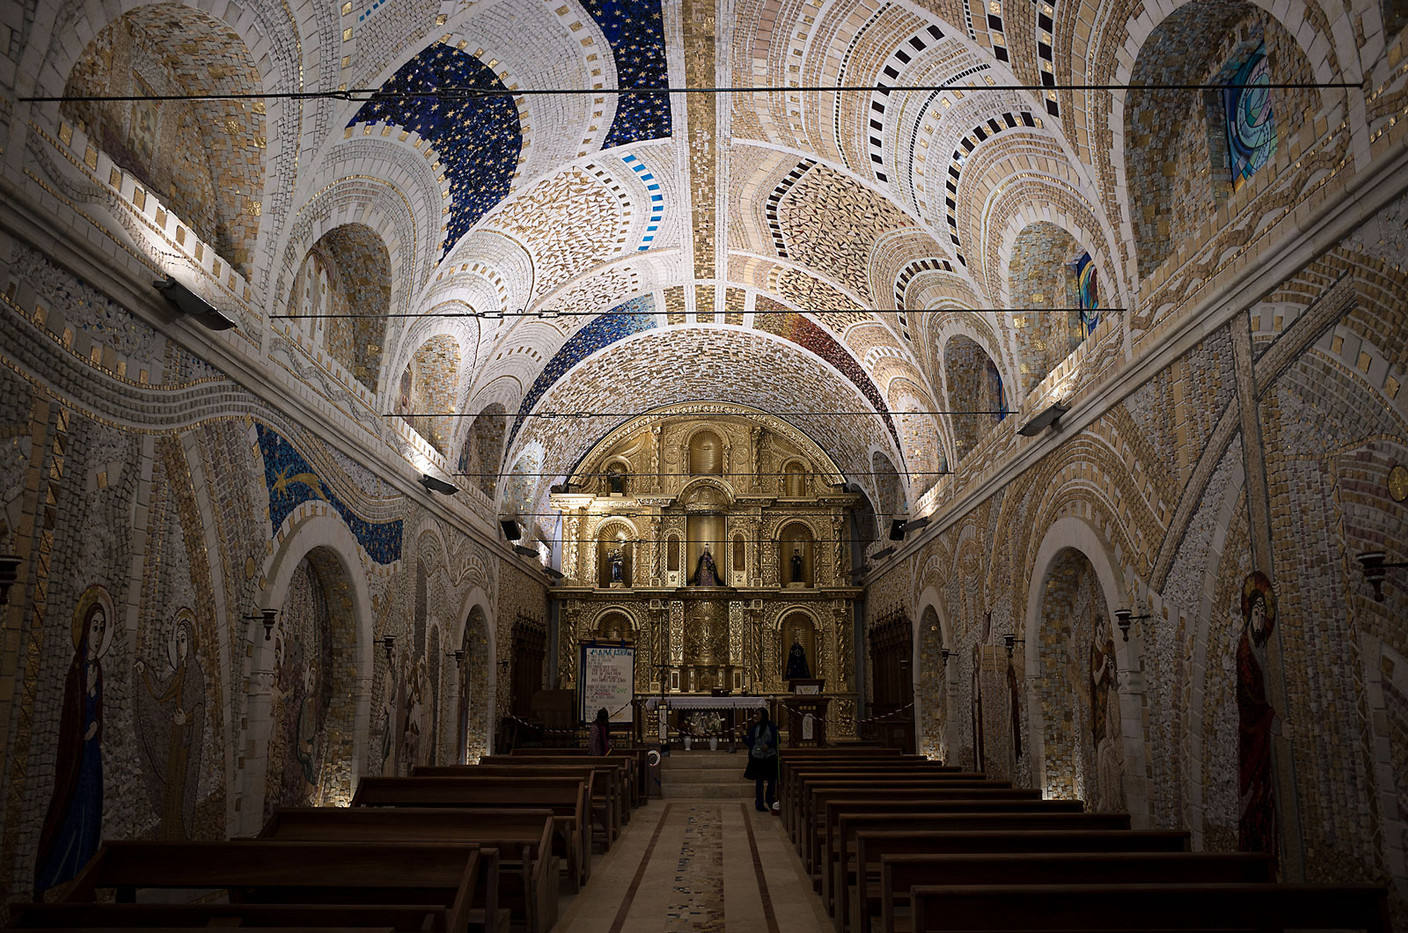 The interior of the church in Polloc, Peru is covered in mosaic tiles of marble, stone, gold leaf, glass, and other materials depicting scenes from the life of Christ.